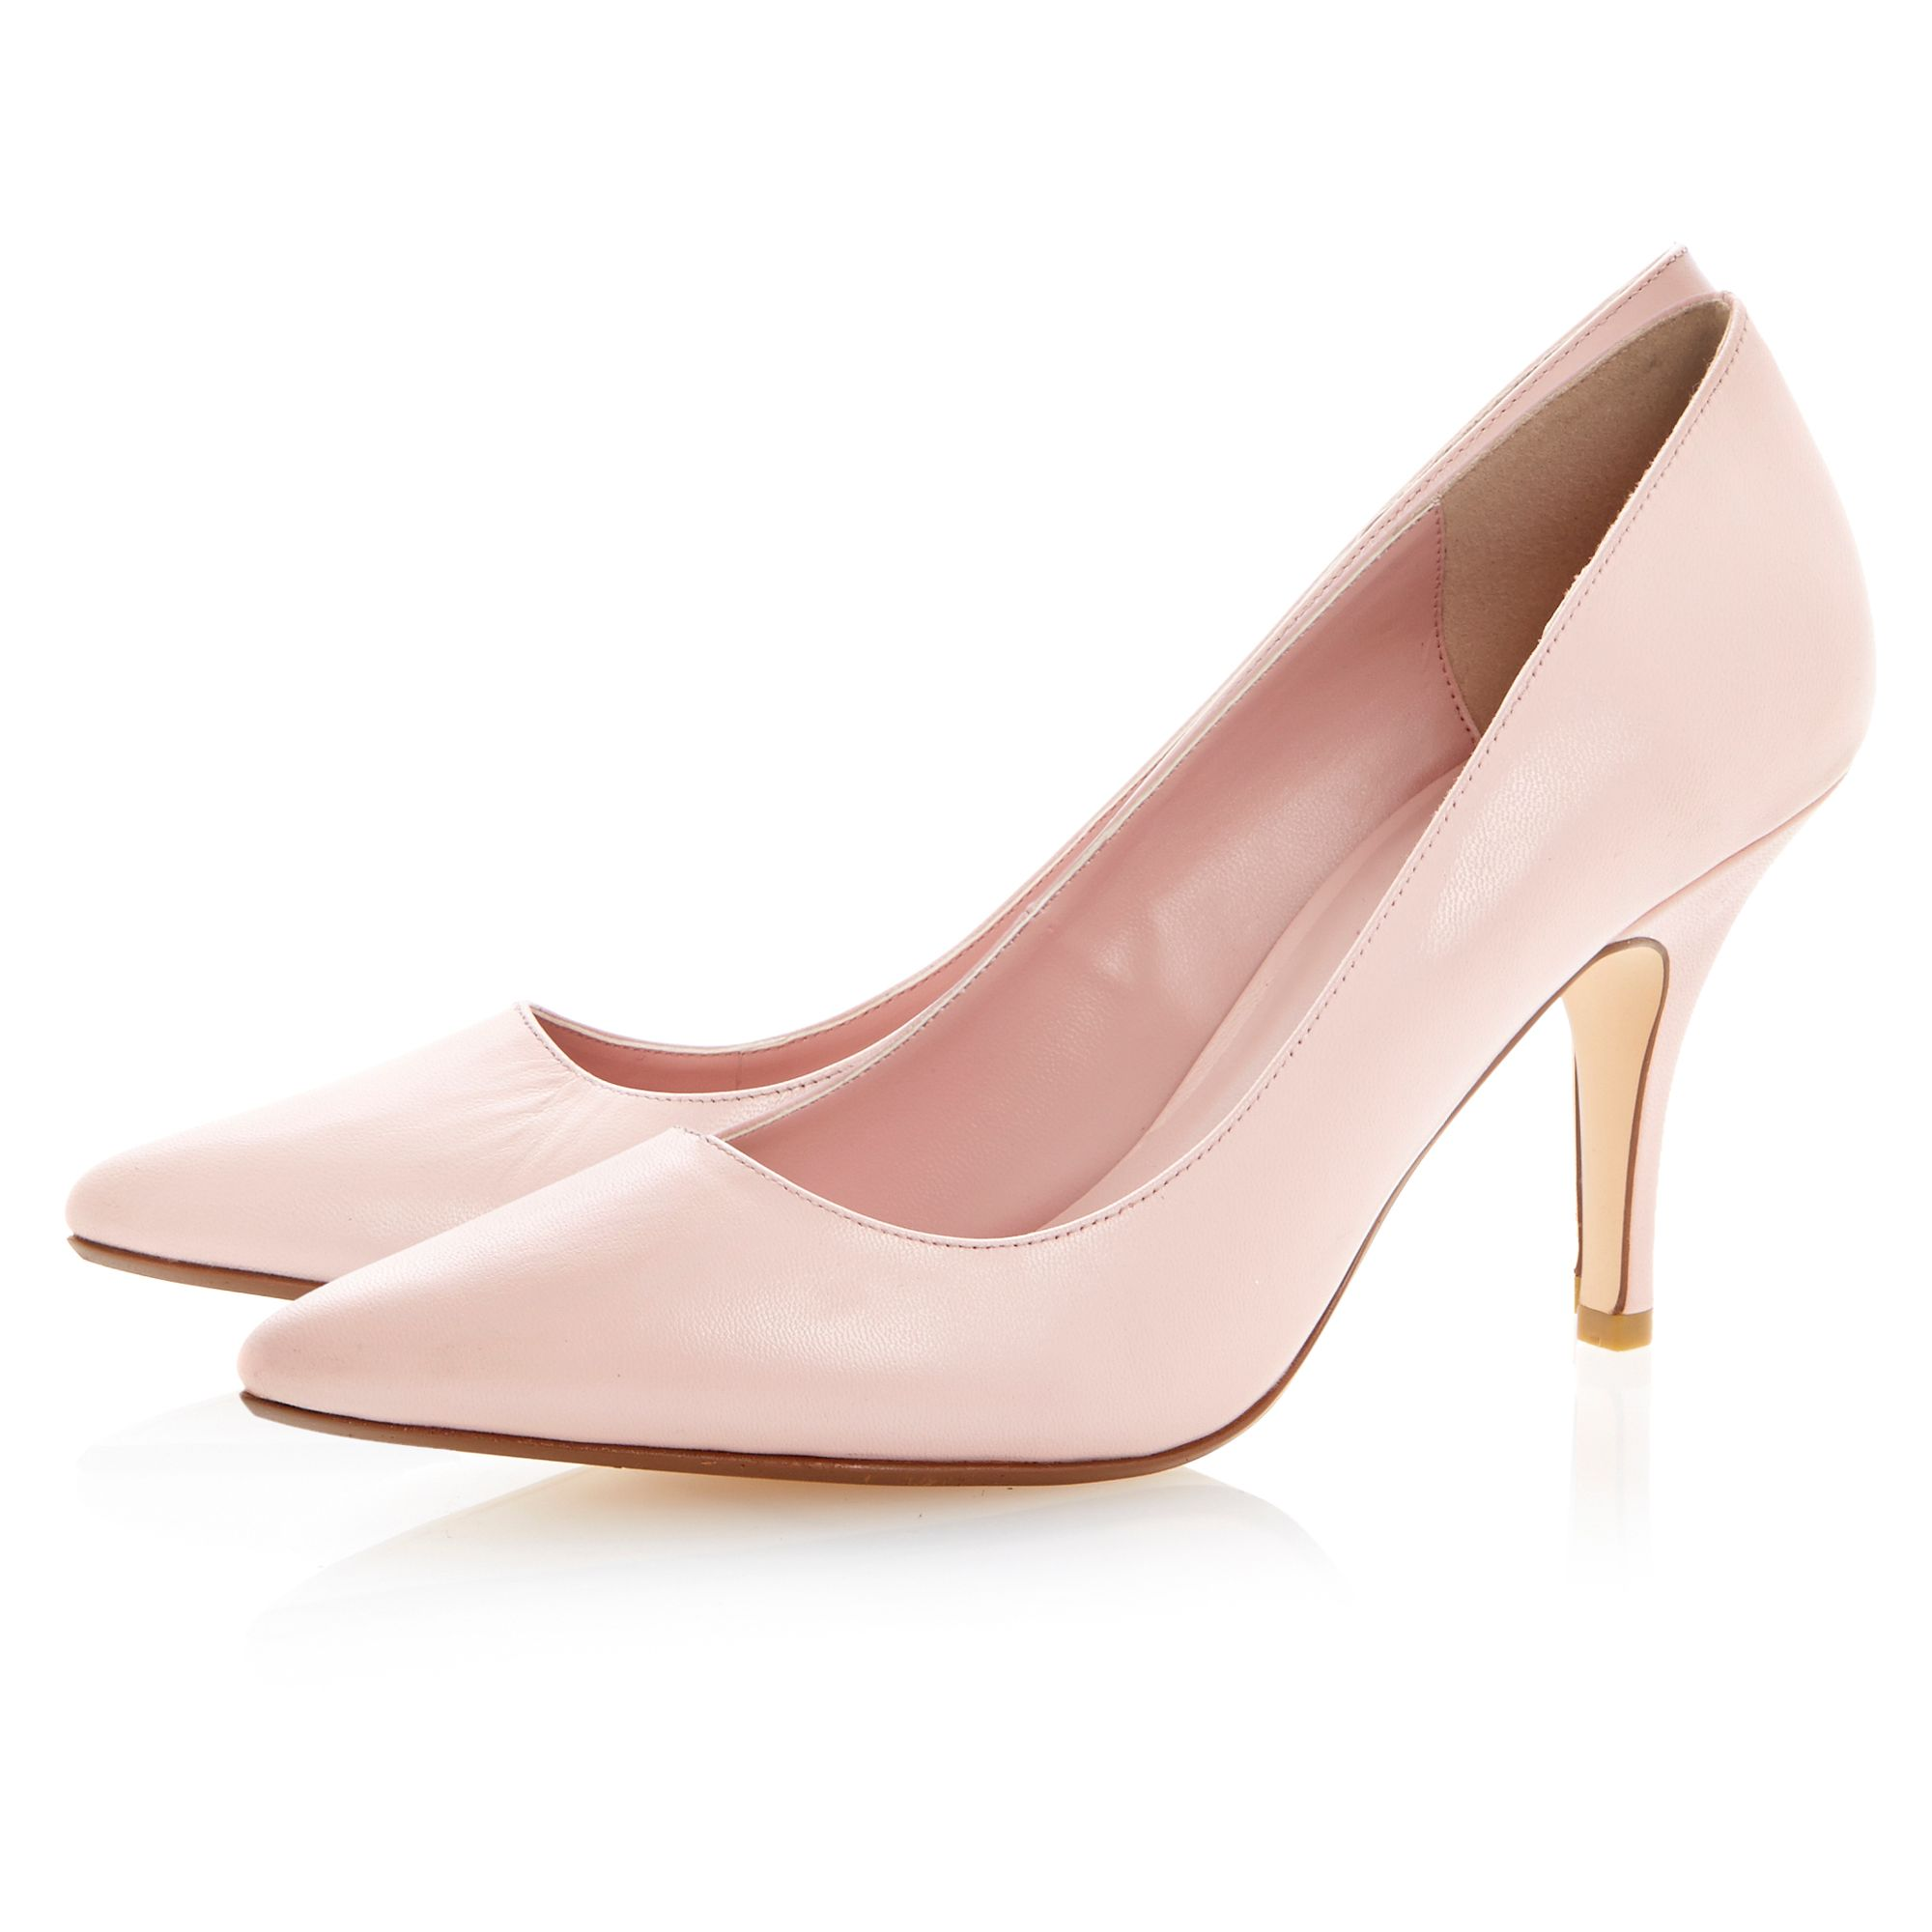 Appoint leather pointed toe stiletto court shoes